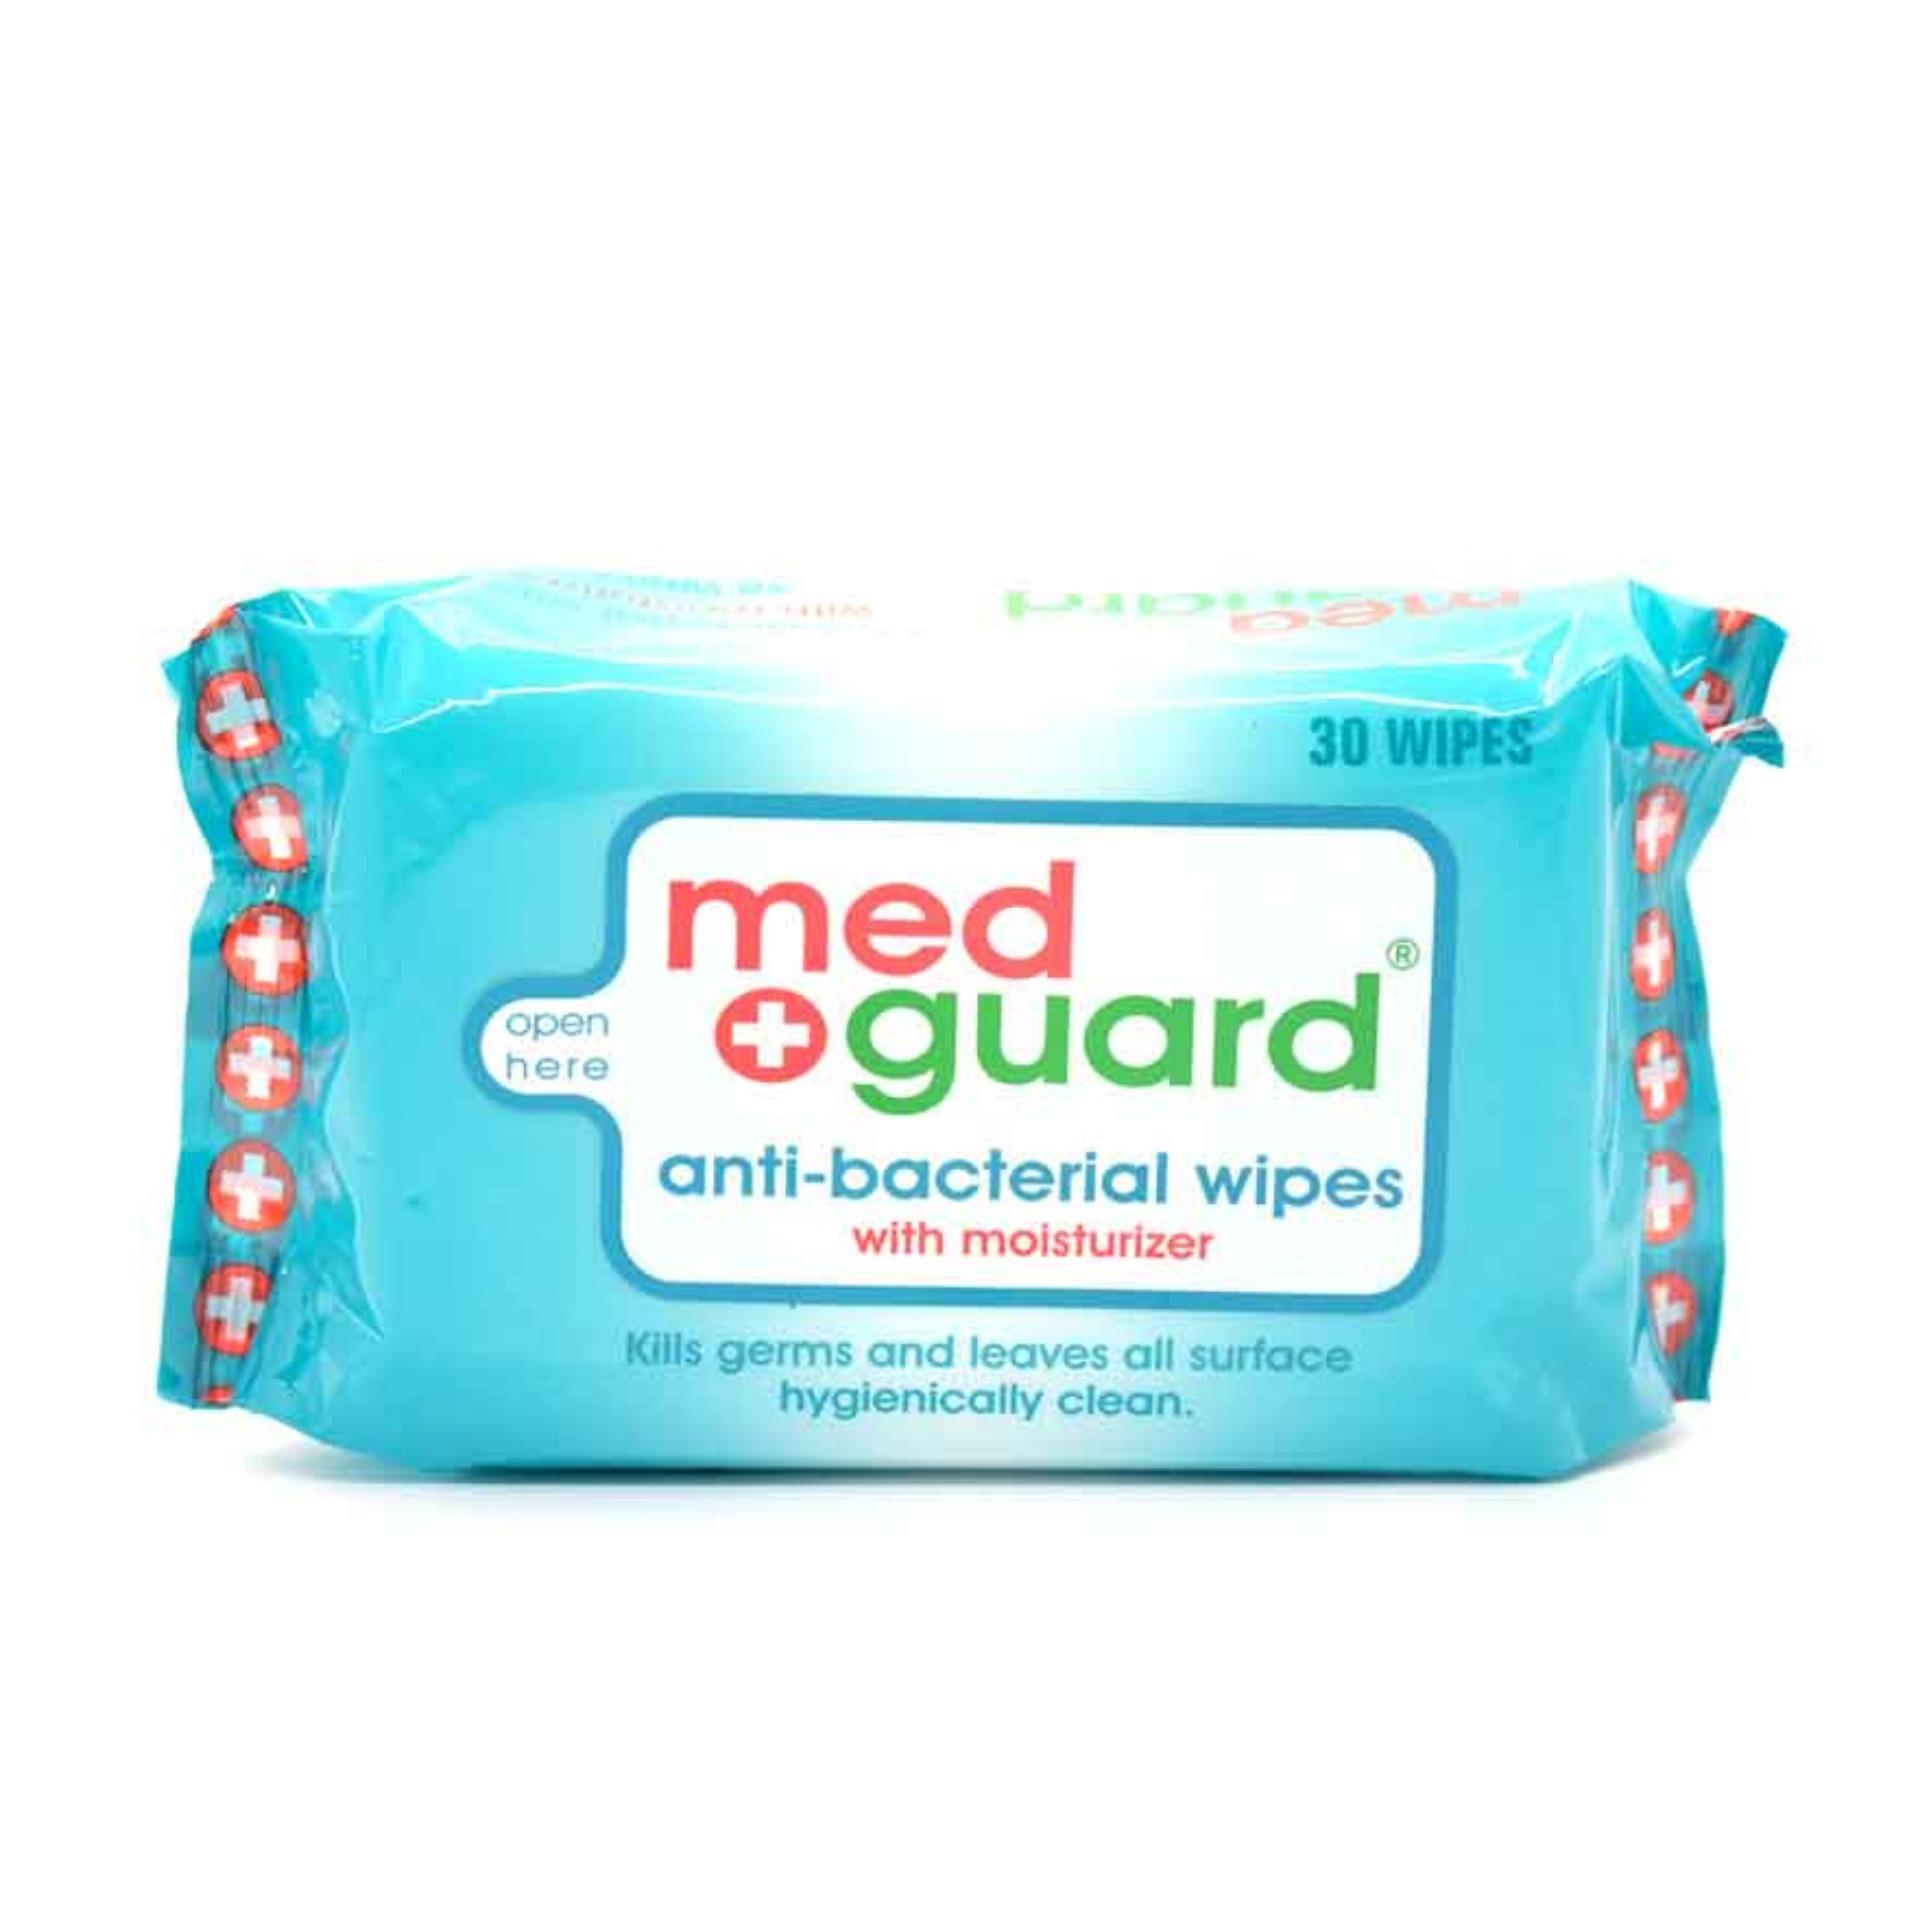 Med Guard Anti Bacterial Wipes 30 Wipes By Watsons Personal Care Stores.